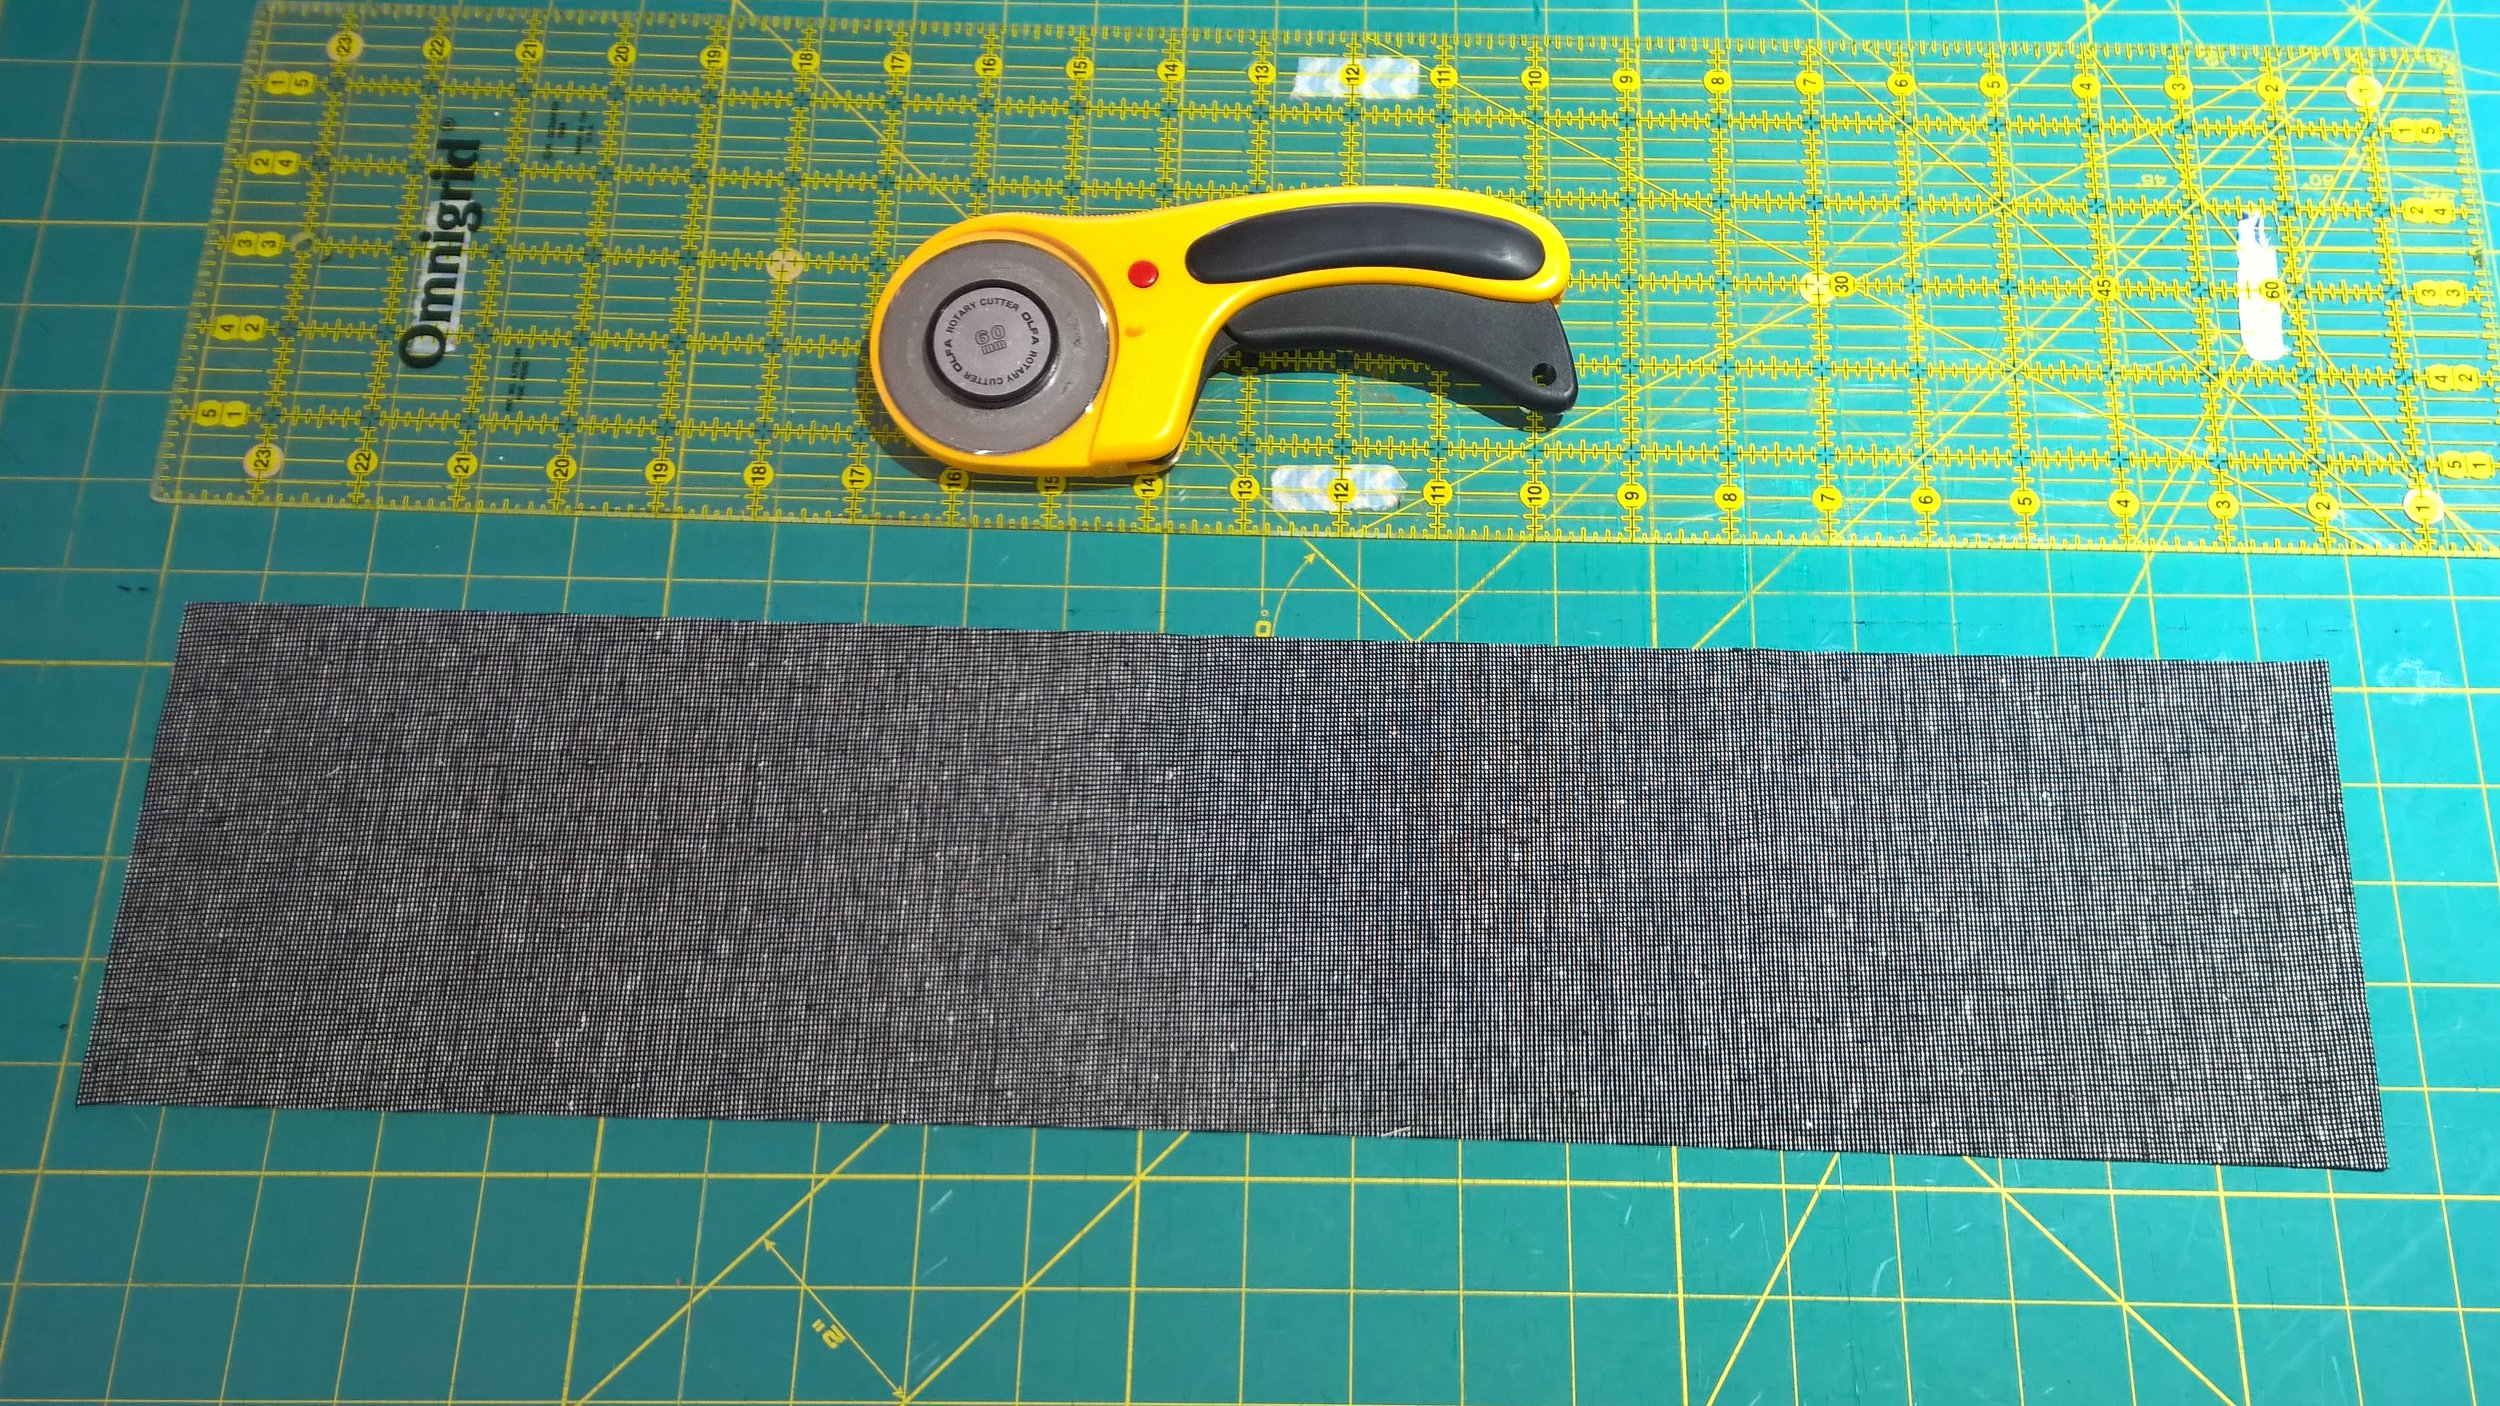 I used Essex Homespun linen in black for my handles; pretty much every tote bag I make has Essex yarn-dyed linen handles!